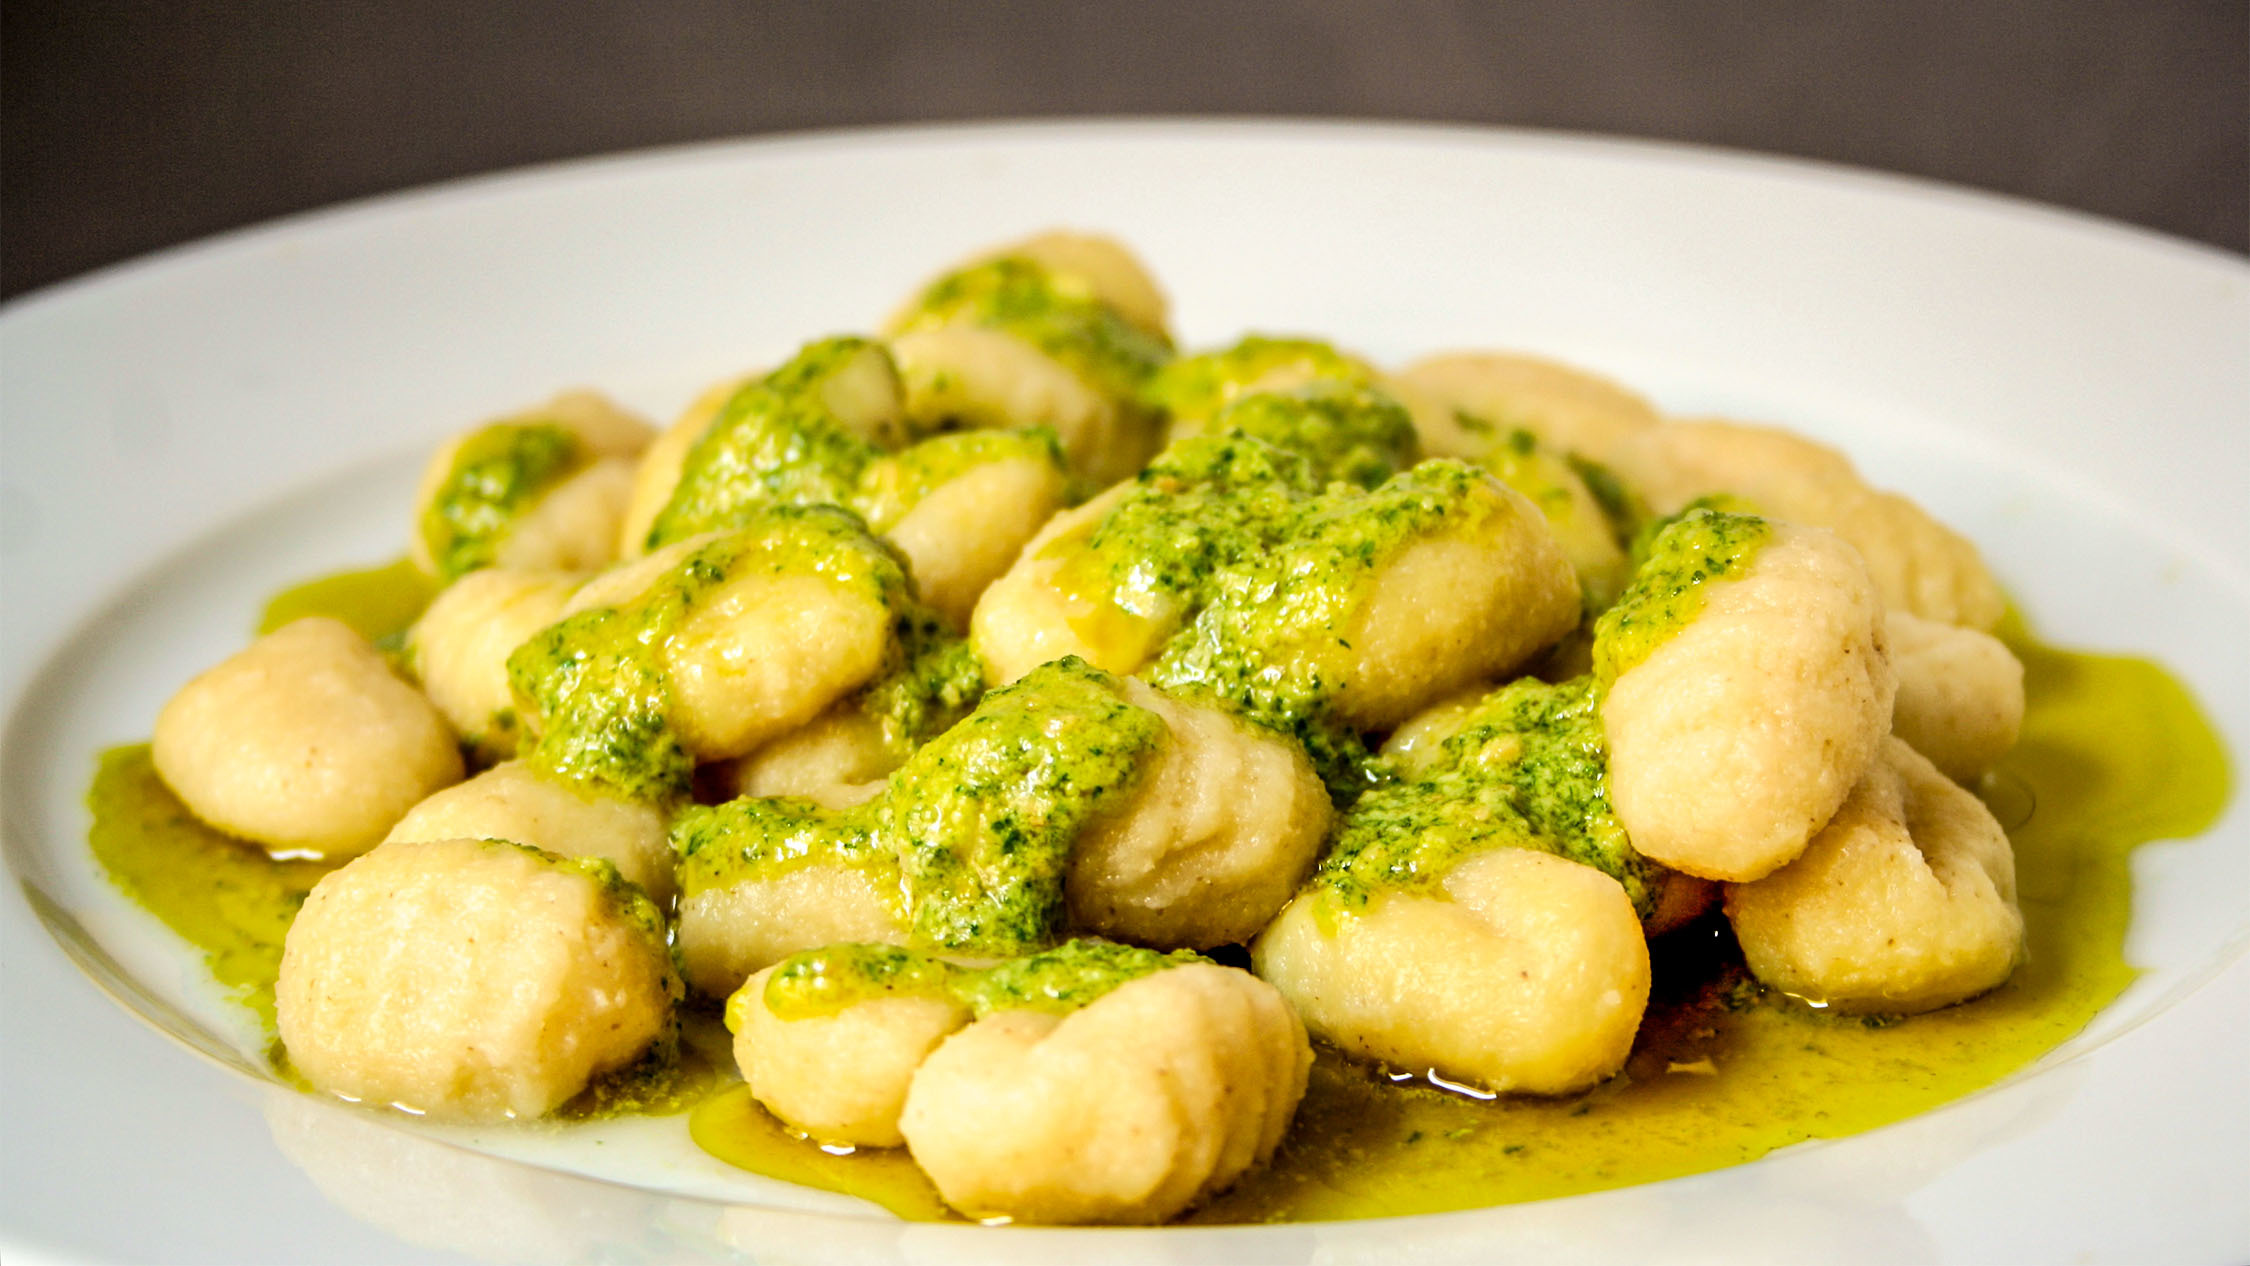 A plate of gnocchi with pesto